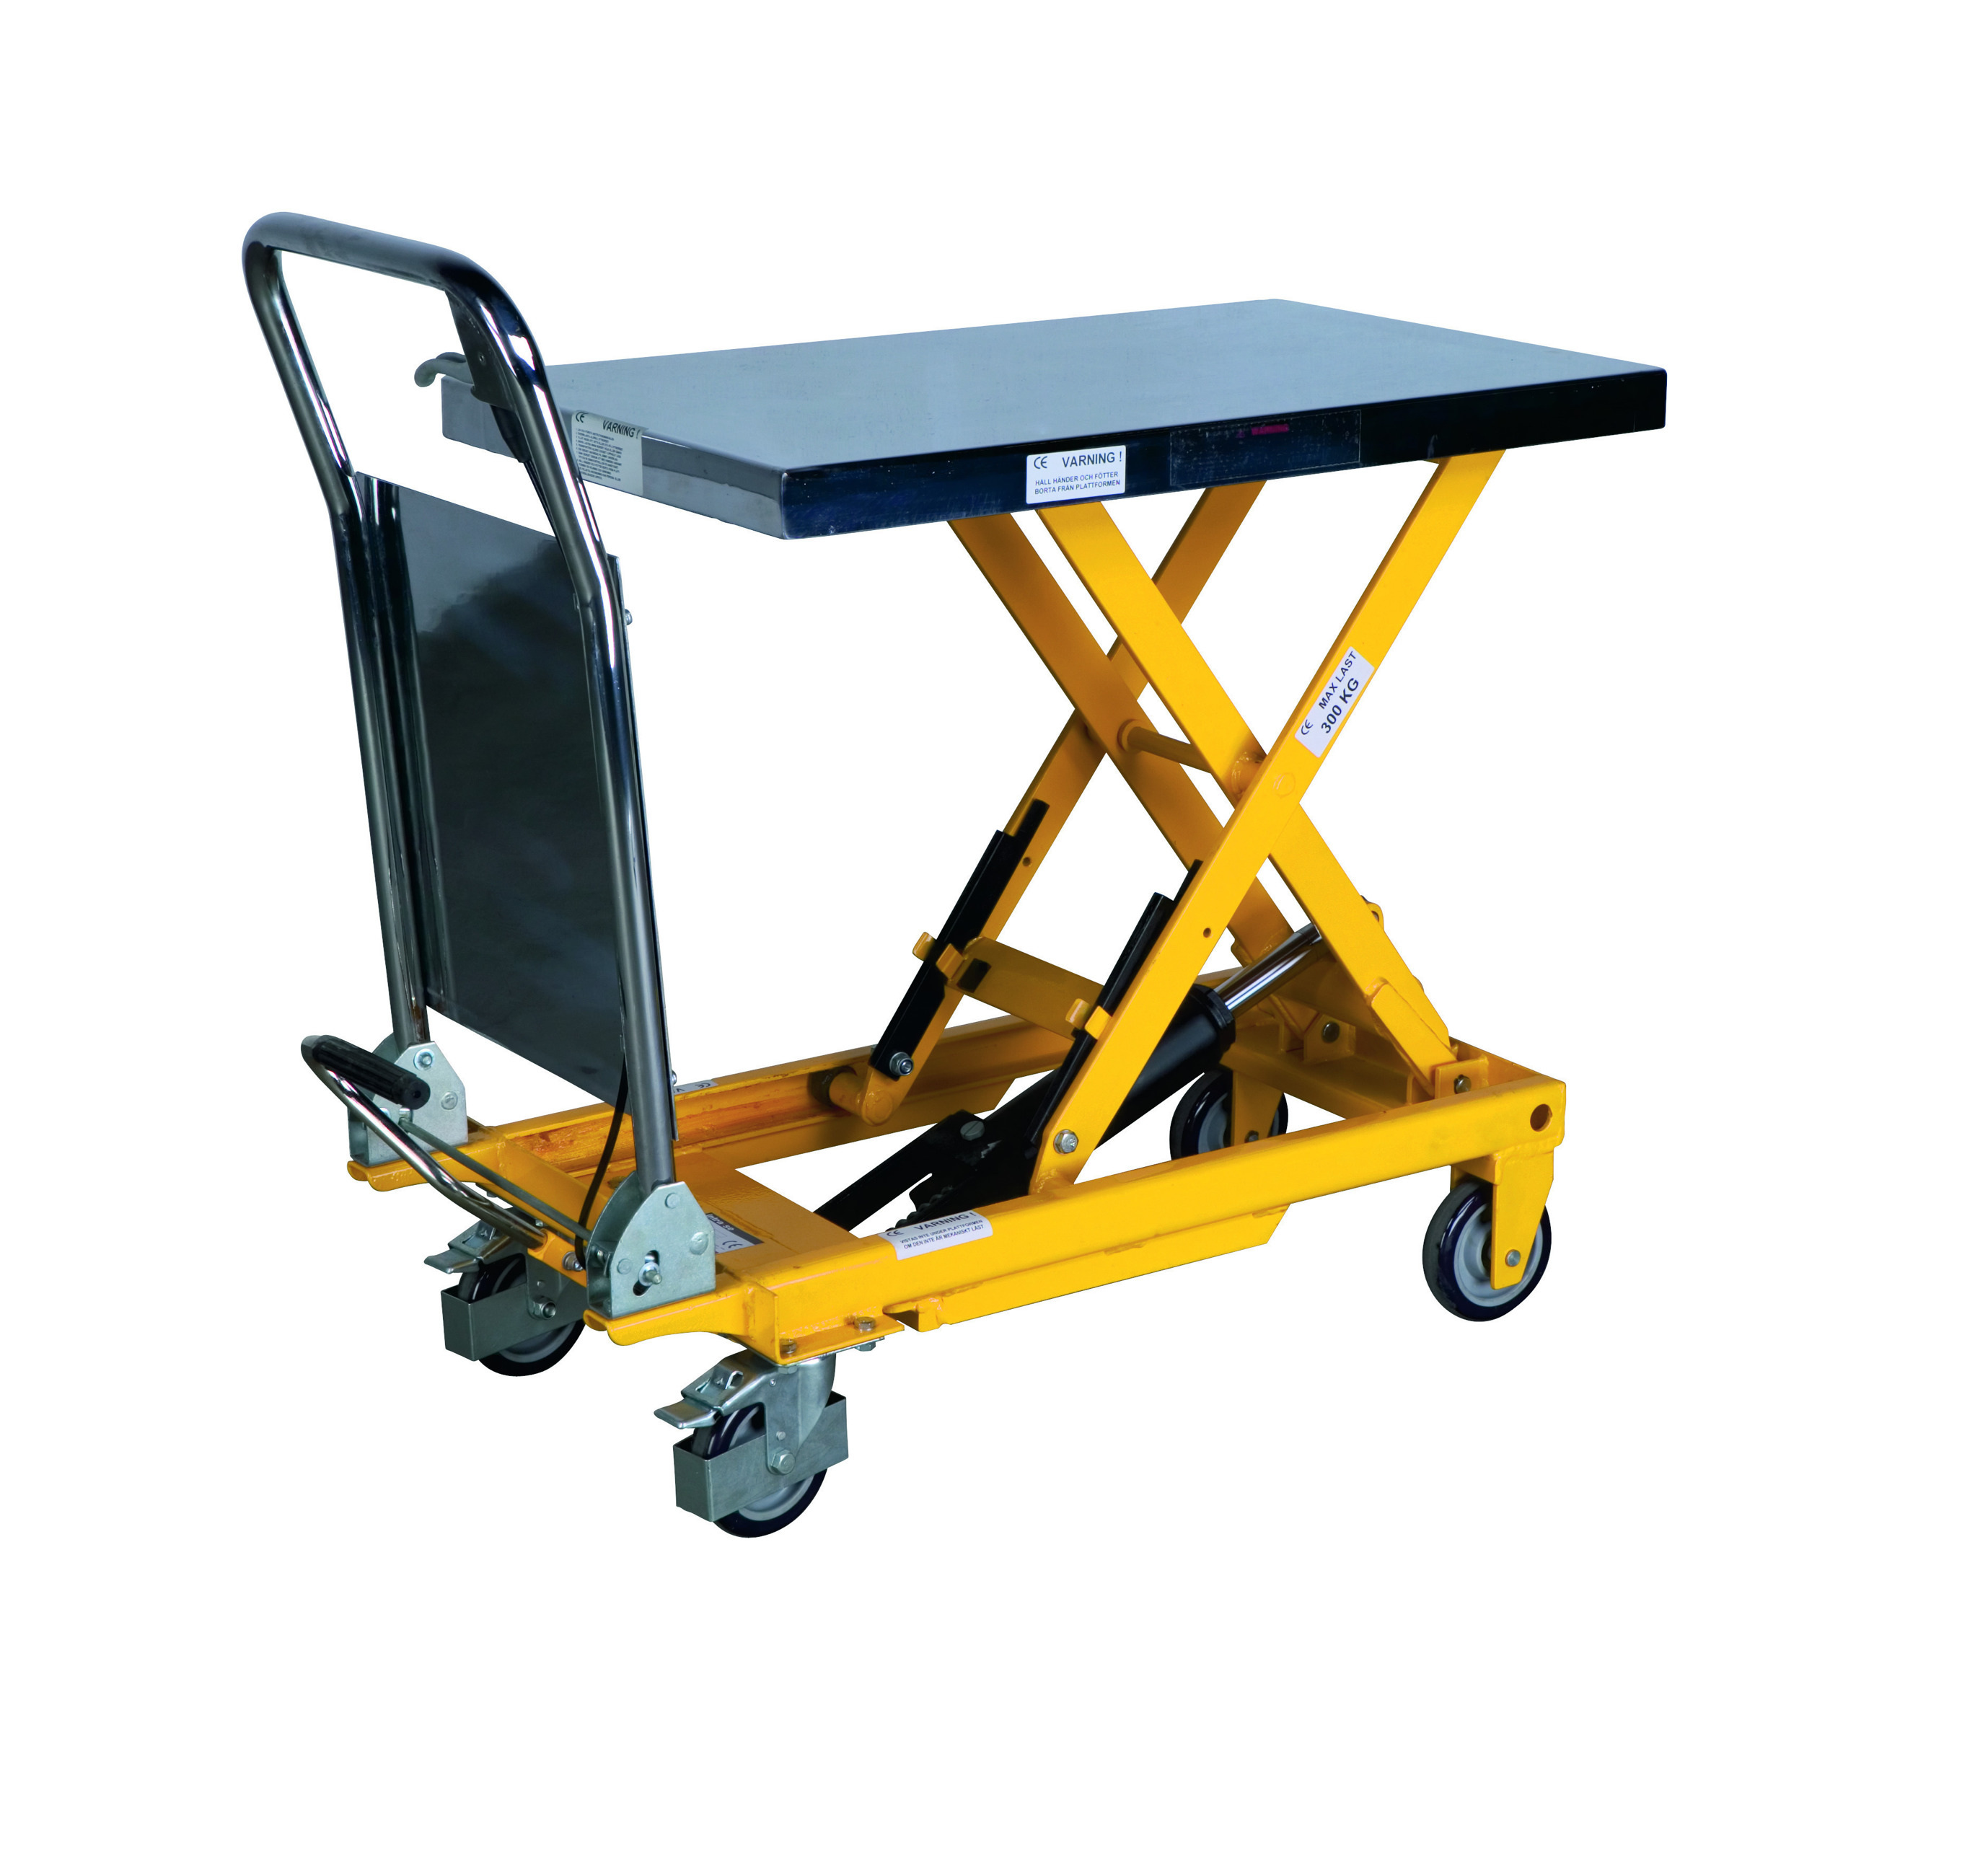 Portabel manual scissor lifting table PL 300 LB